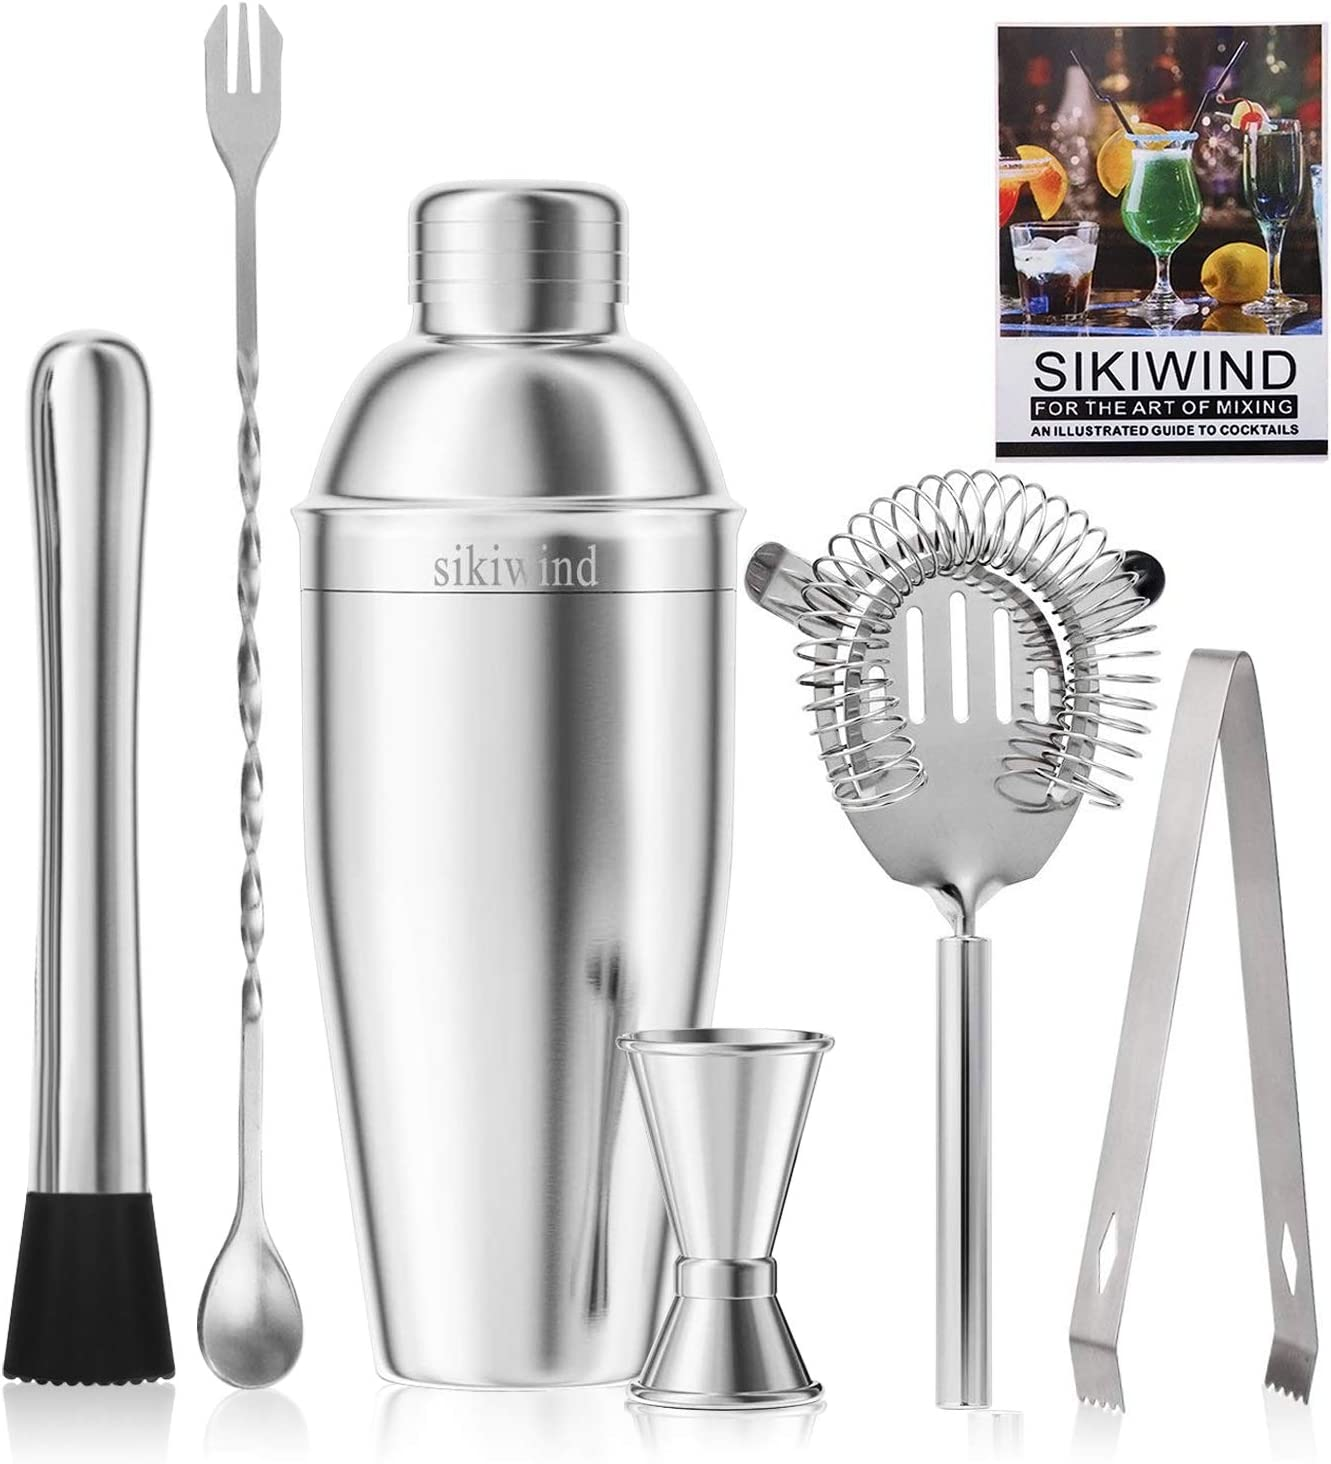 Cocktail Shaker Set 7Pcs Silver Stainless Steel Brushed Bar Cocktail Shaker Set Bartender Kit Bar Accessoires